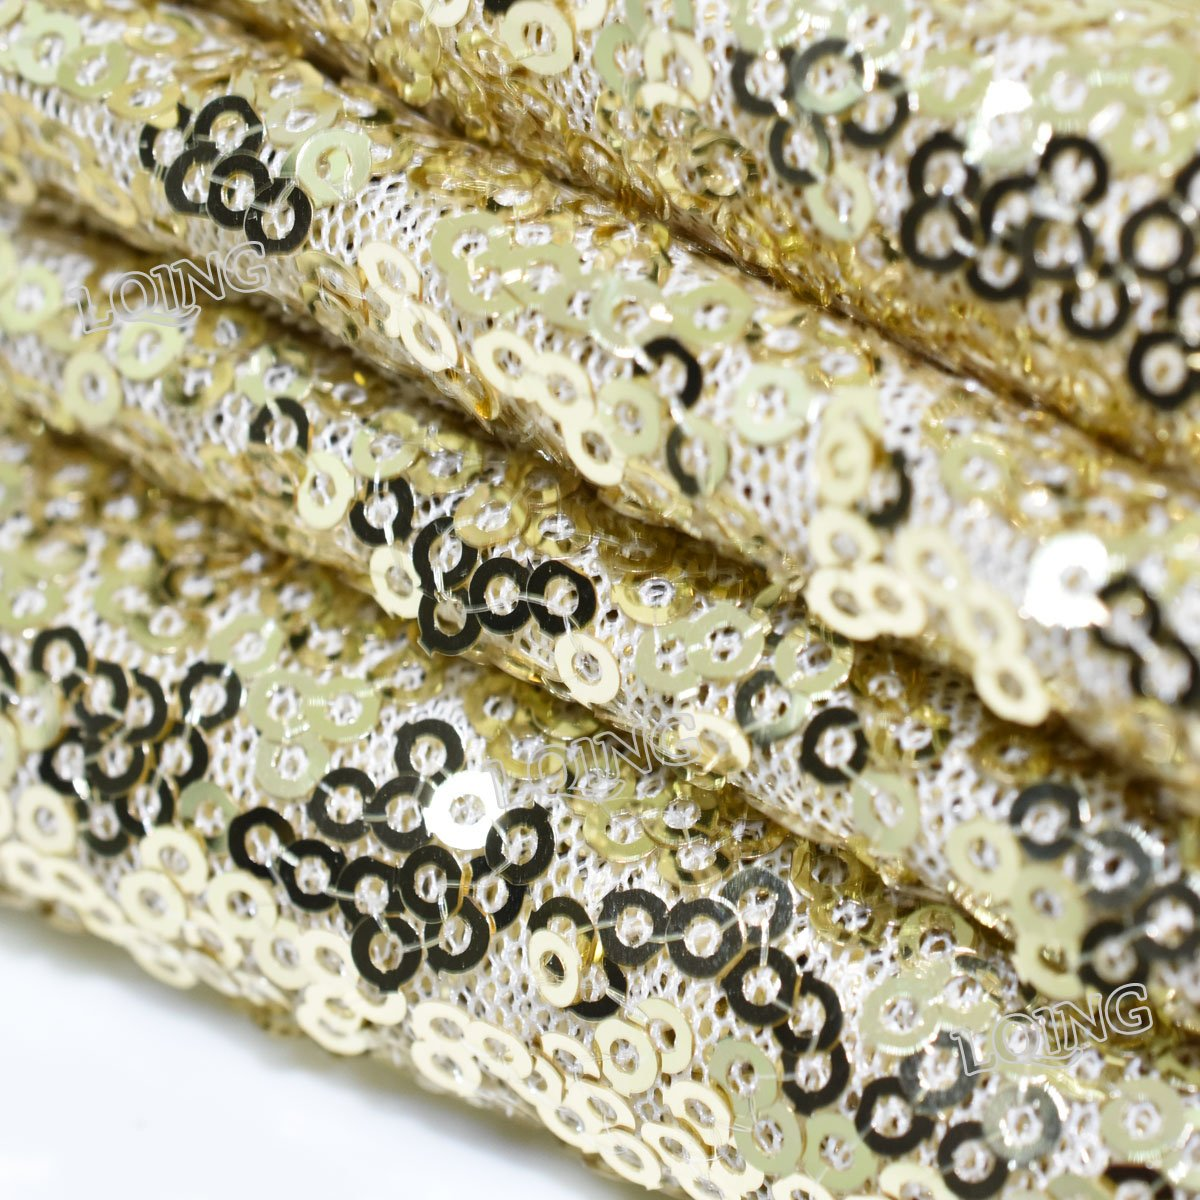 10PCS Factory Wholesale Sequin Tablecloth-90x132inch-Light Gold Shimmer Sequin Fabric, Sequin Table Cloth, Table Linens Nice Wedding/Birthday Shower Decoration Needed